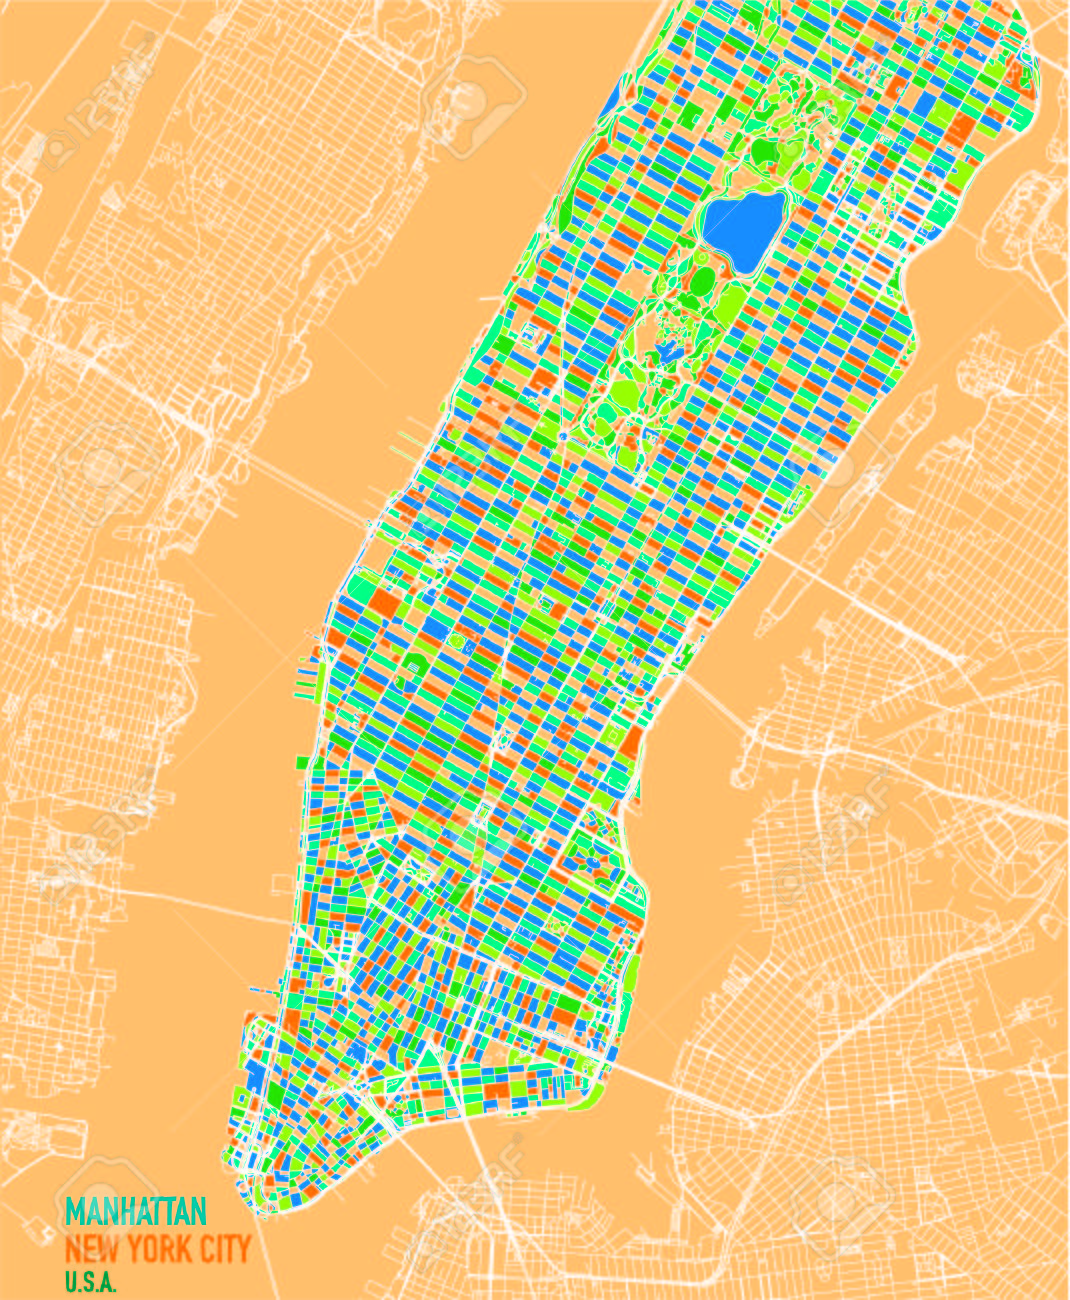 Map Of New York Neighborhoods Manhattan.Satellite Map Of New York City Manhattan Island Neighborhoods